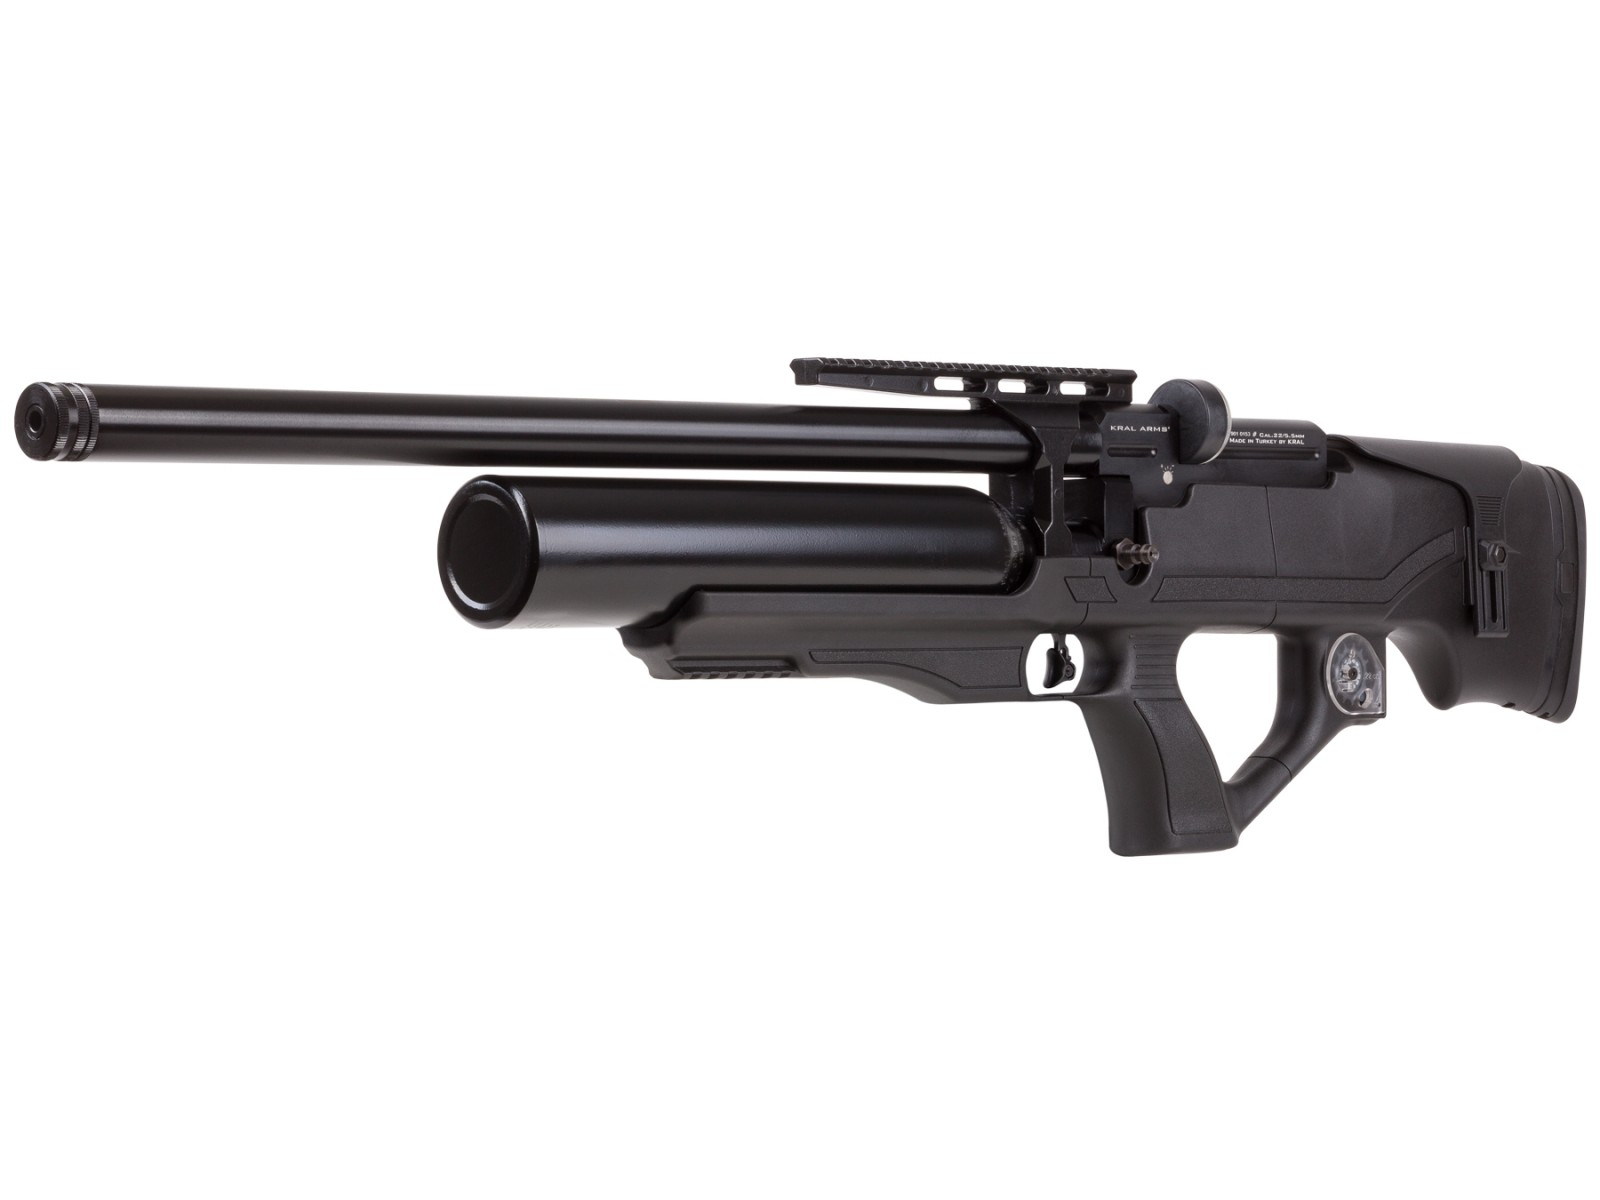 Kral Puncher Knight S PCP Air Rifle, Synthetic Stock